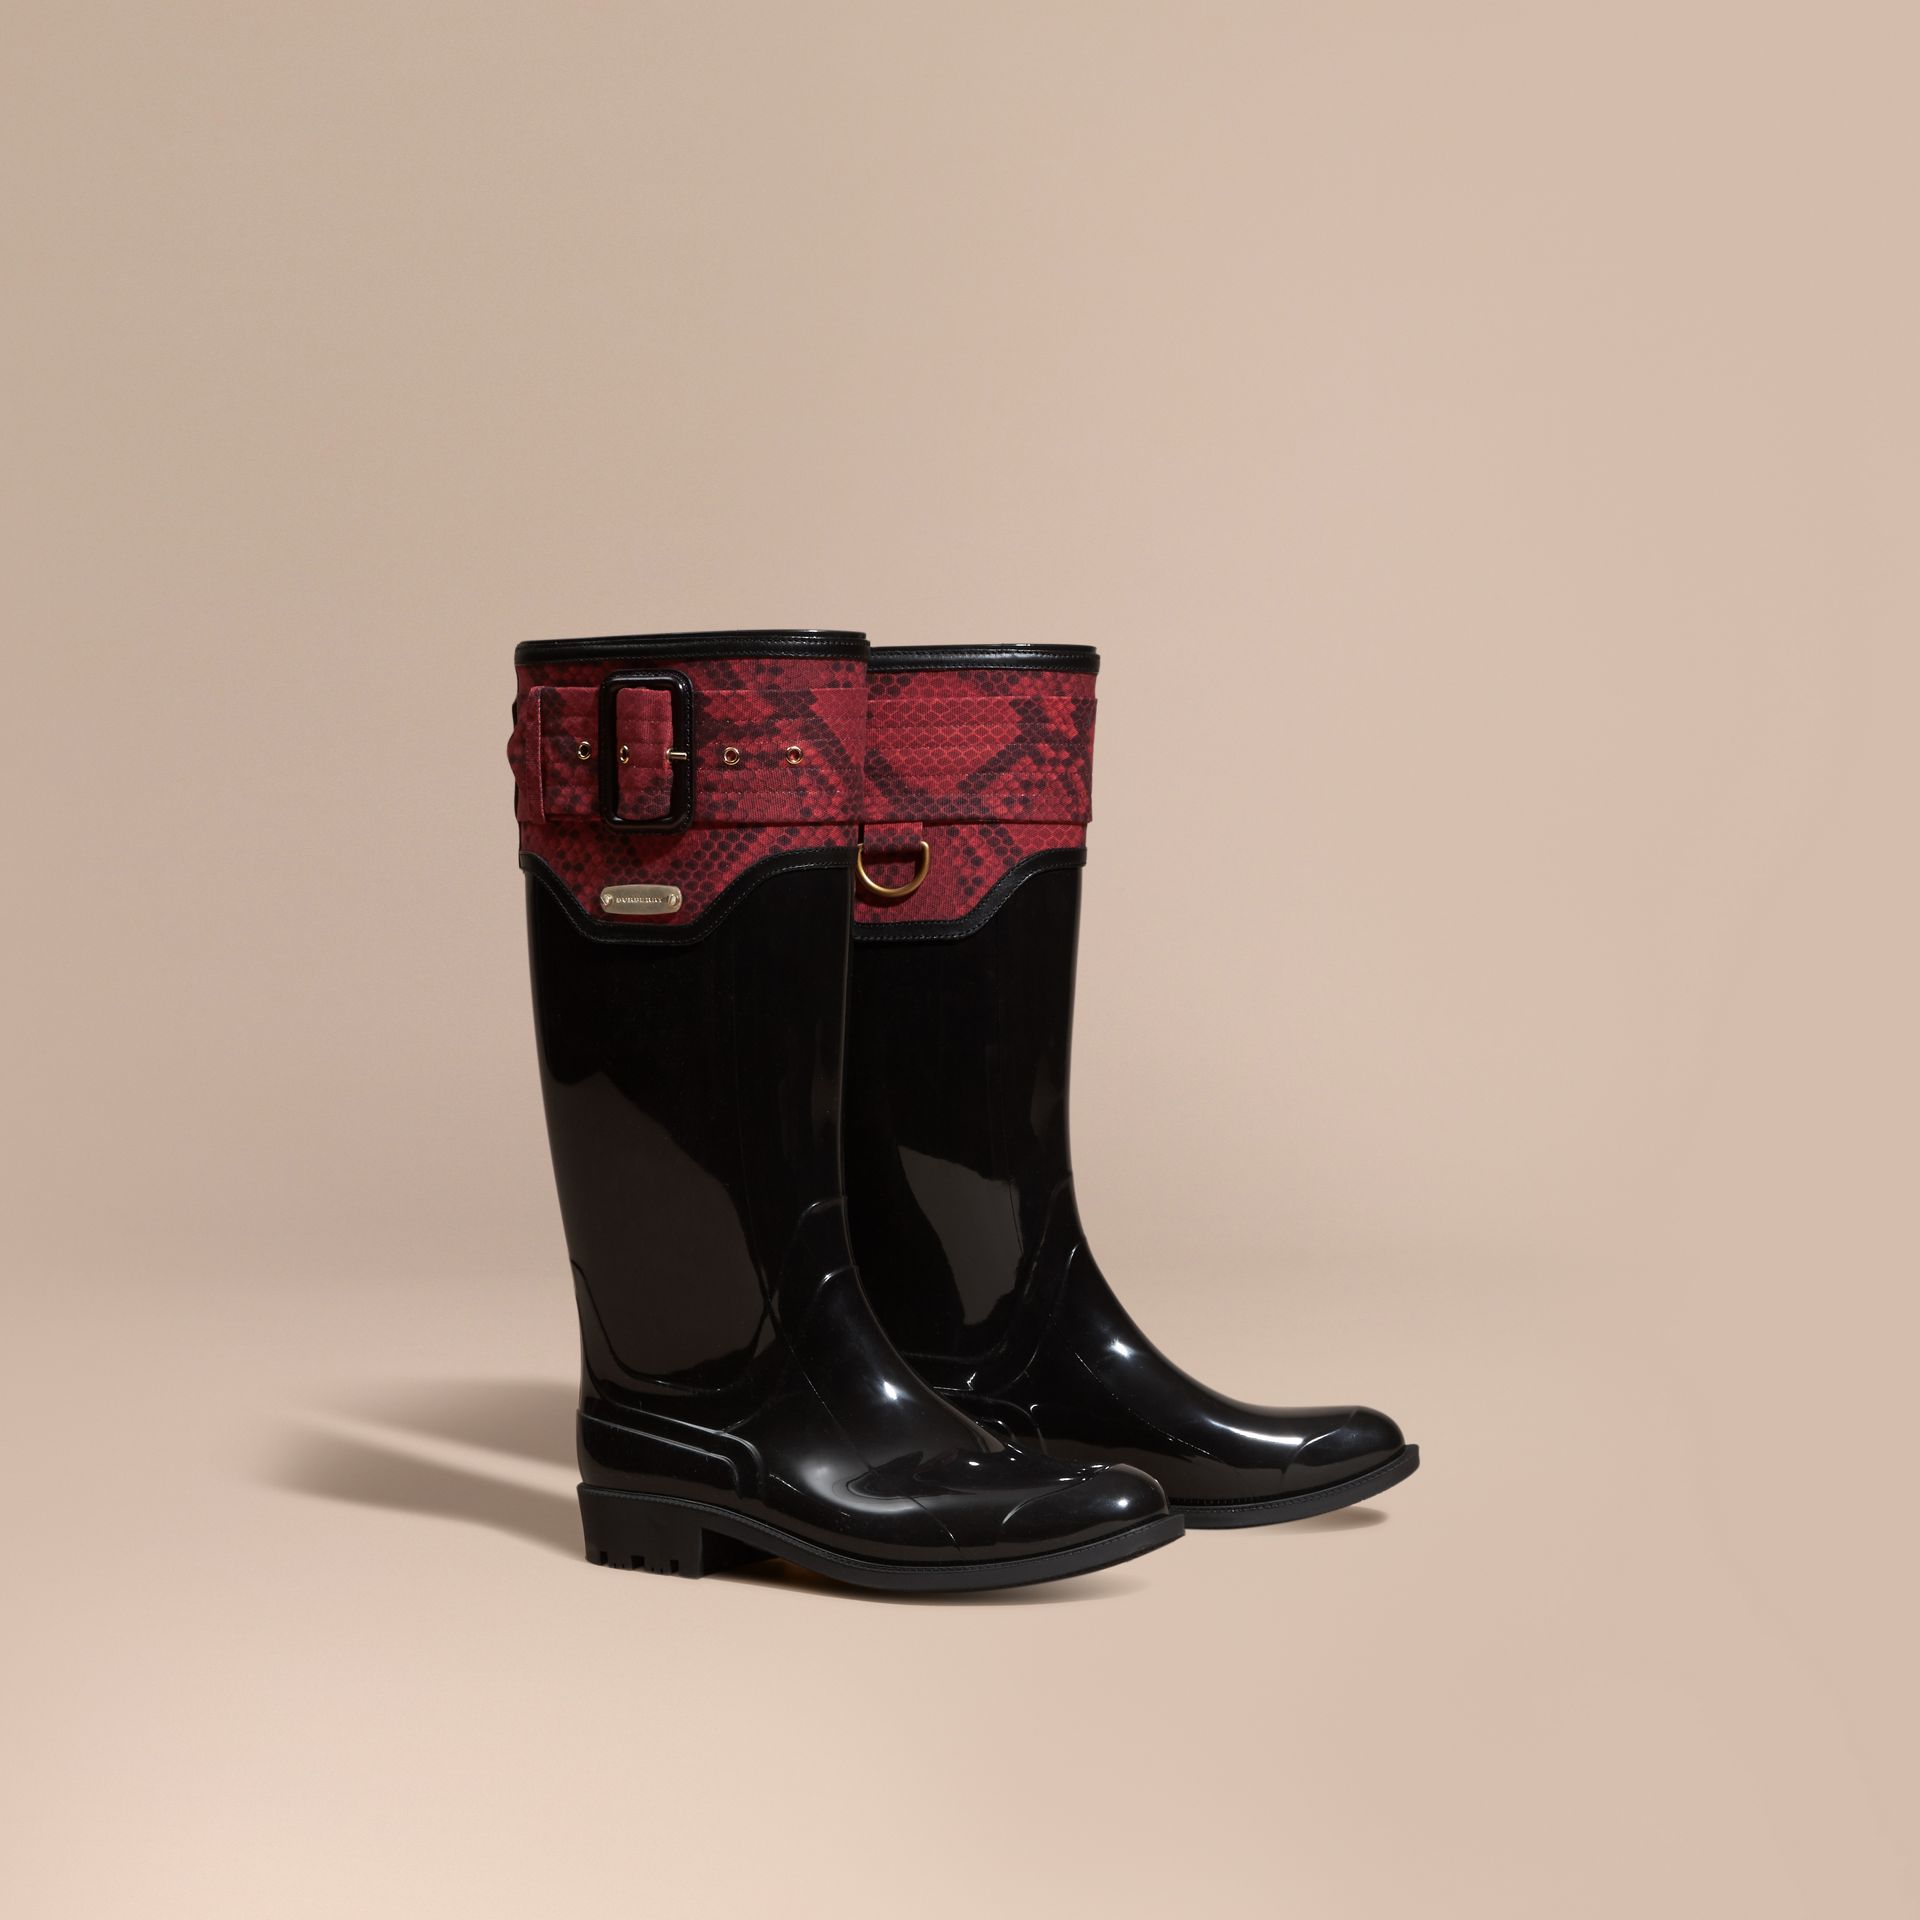 Black/windsor red Python Print Detail Rain Boots - gallery image 1